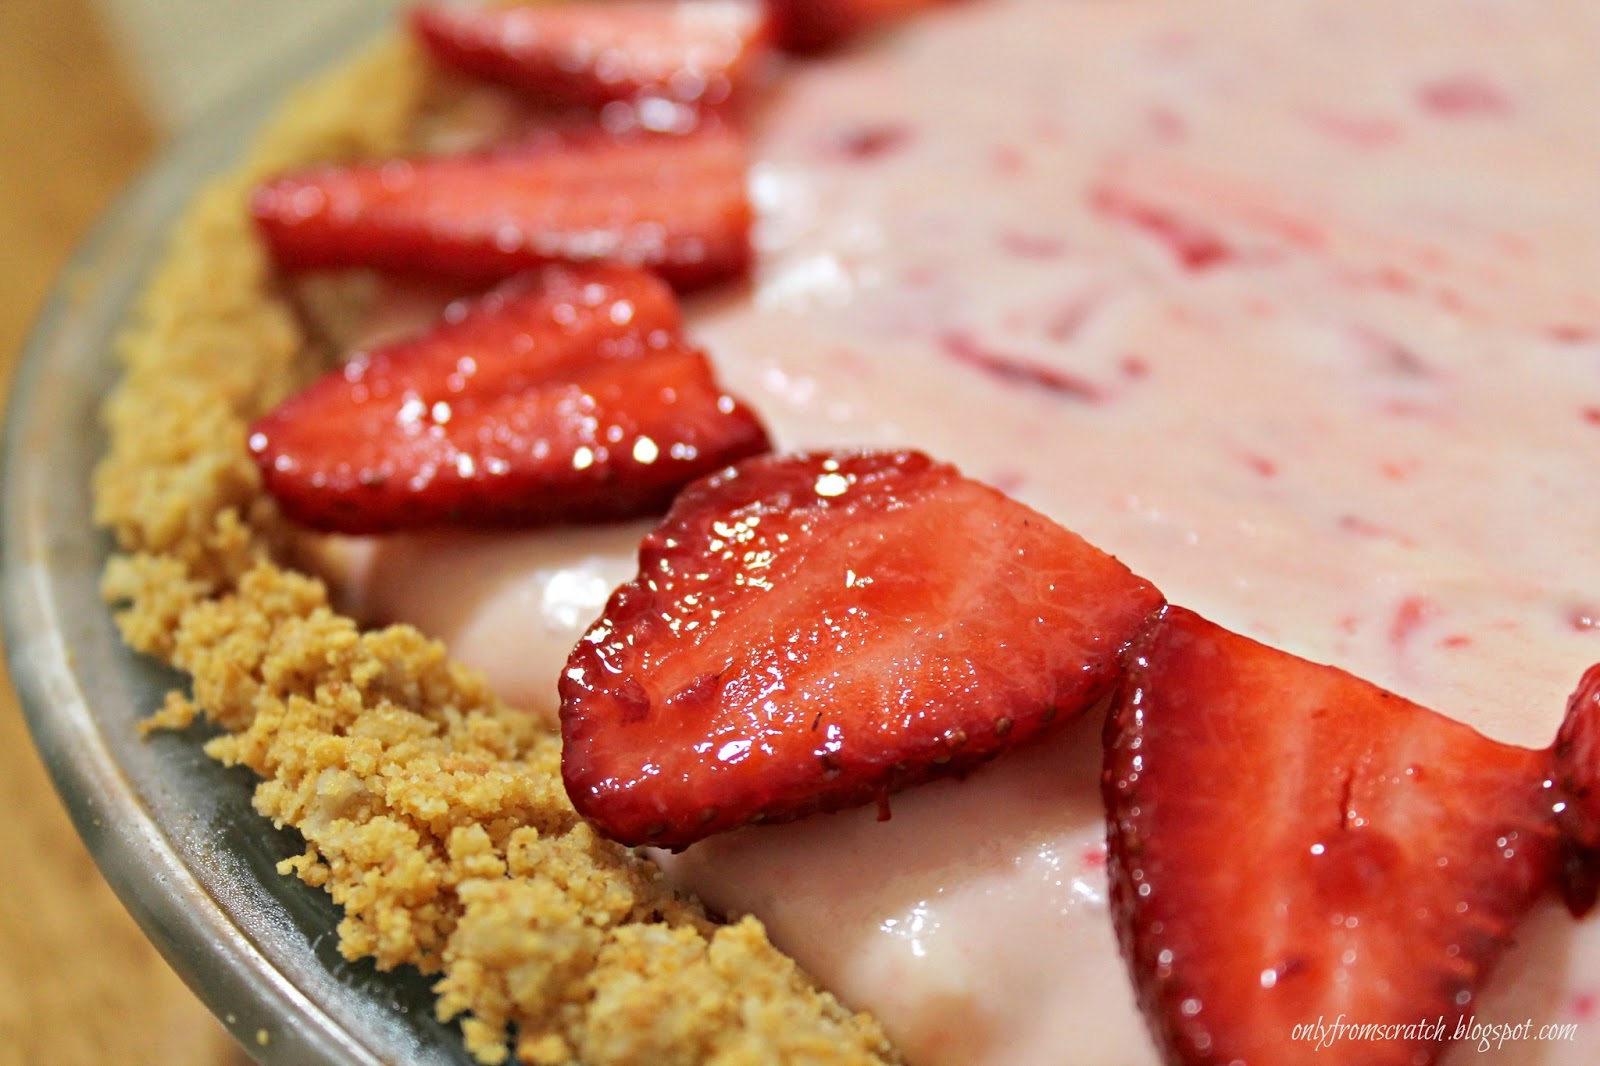 Only From Scratch: It's Strawberry Time & a Strawberry Tart Recipe